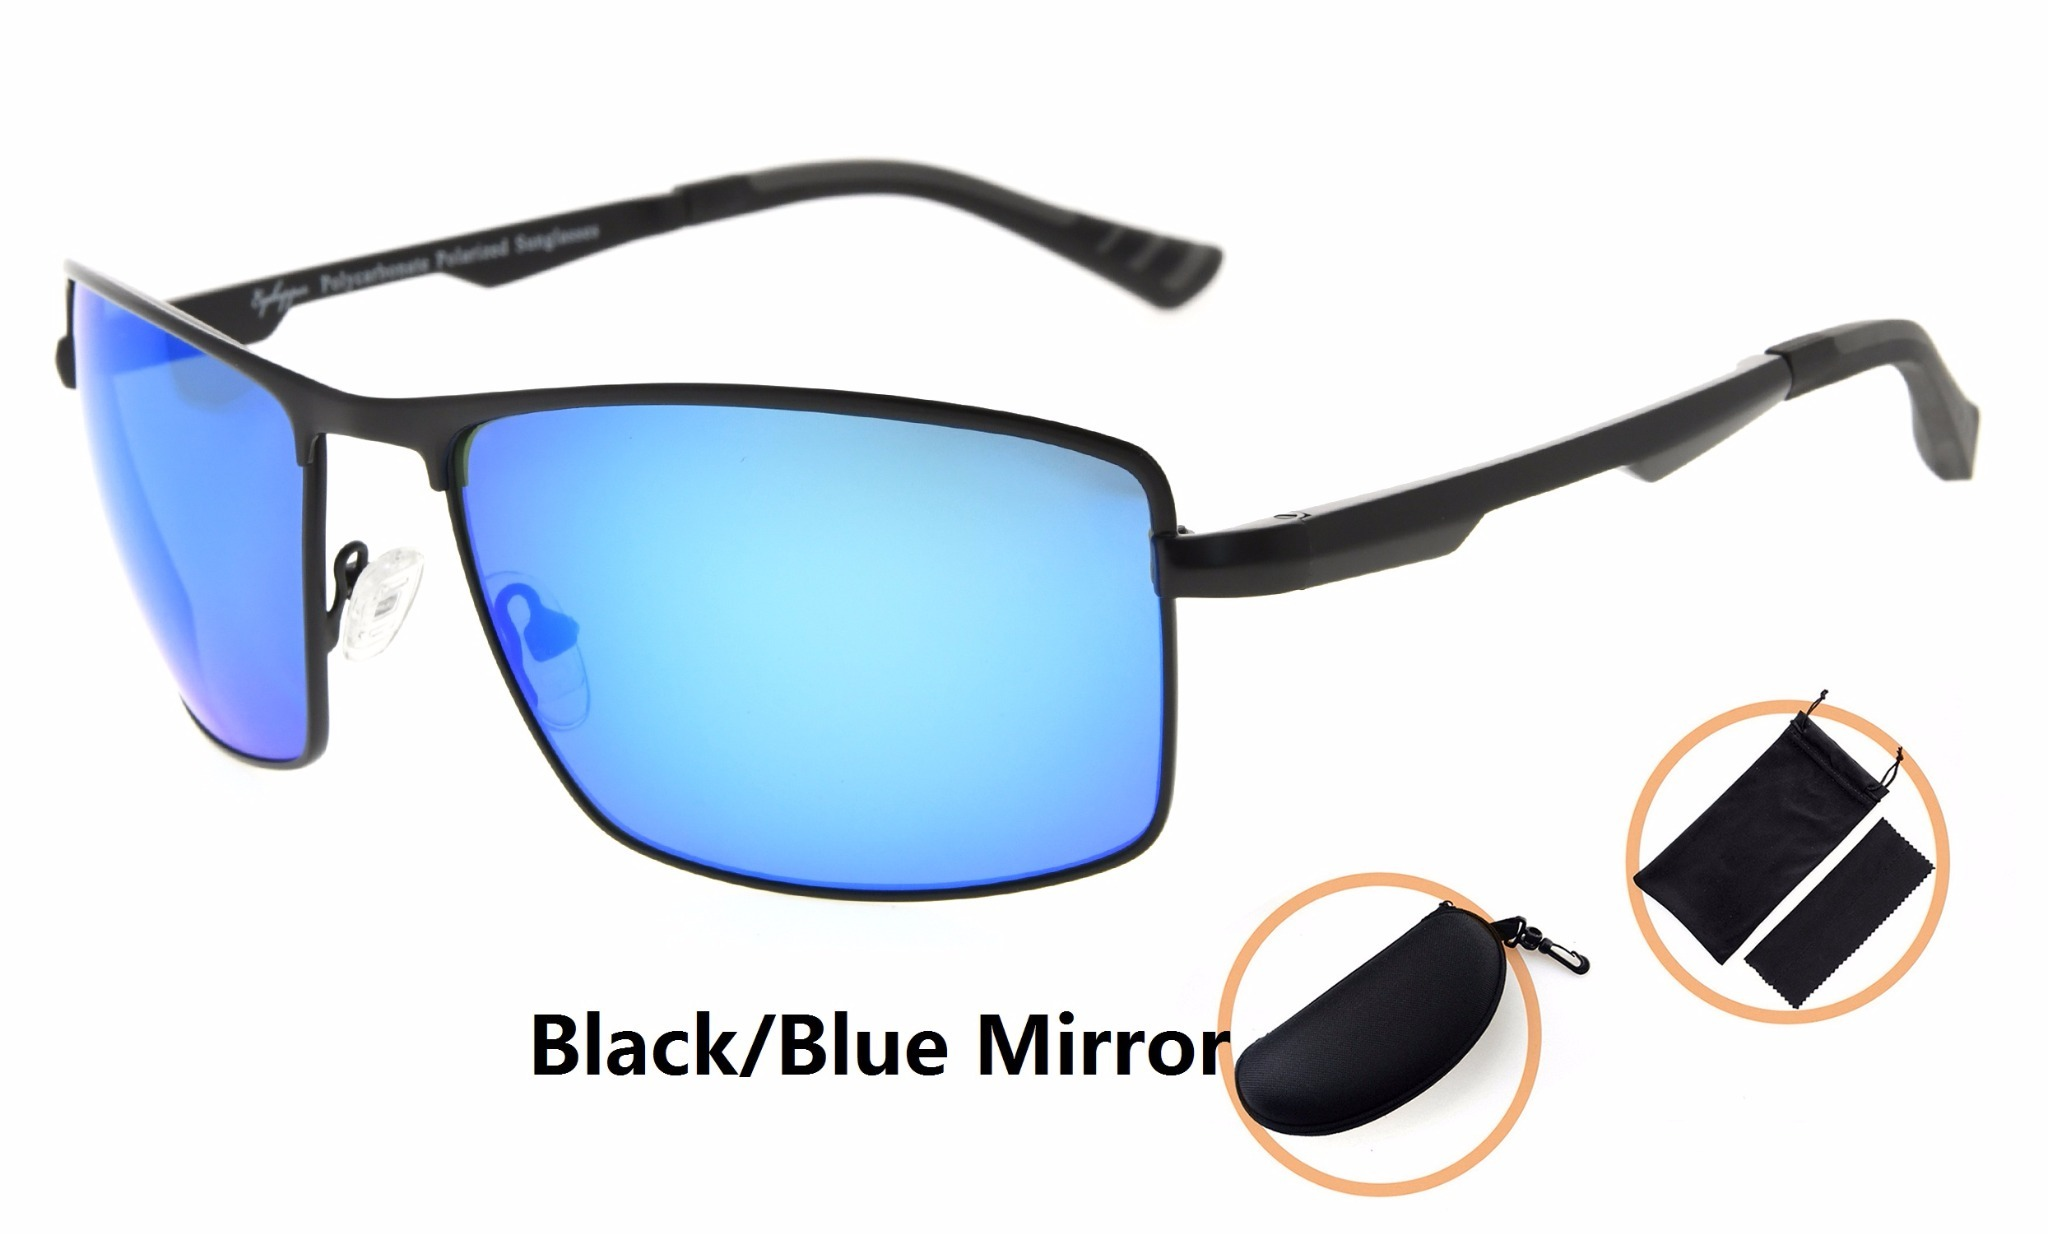 f3d338bea1 Eyekepper Polycarbonate Lens Polarized Sunglasses With Metal Frame Spring  Hinges PCPG802-Mirror Lens